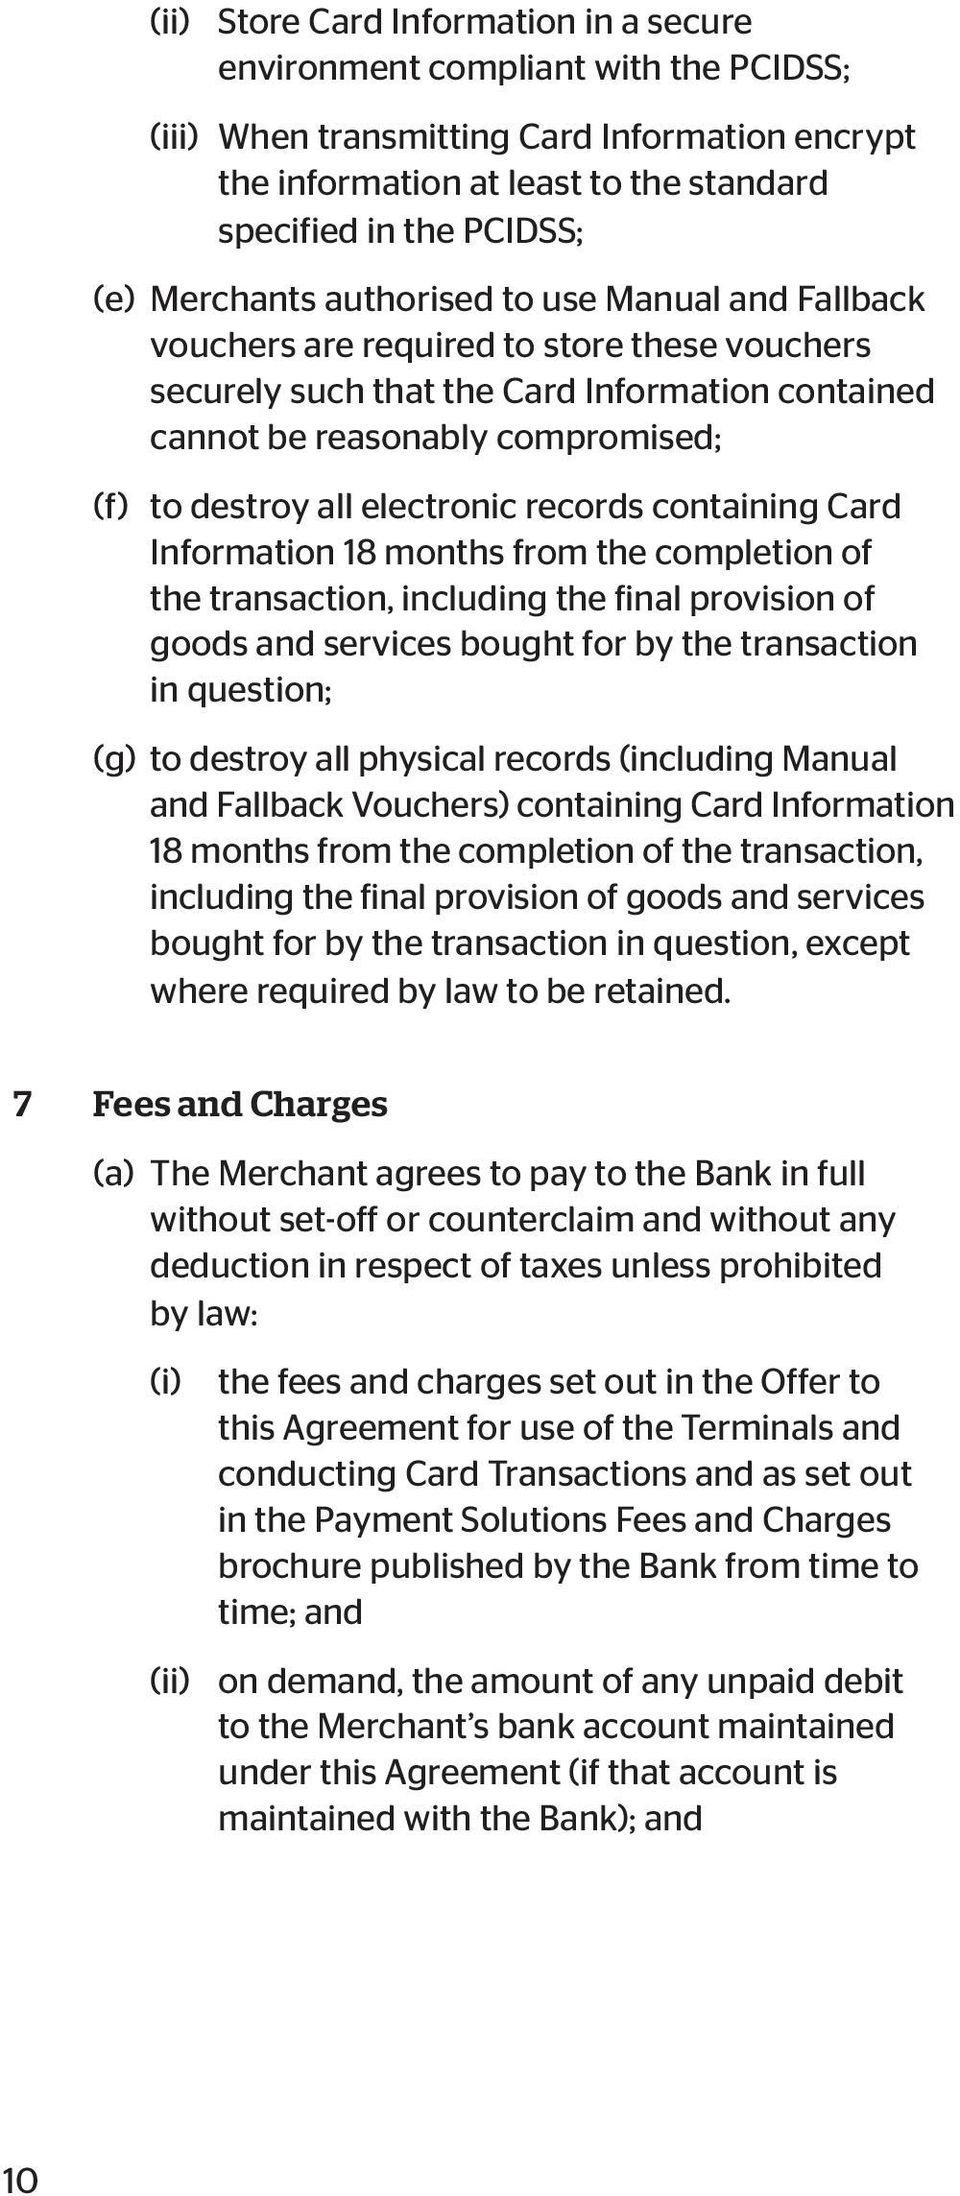 electronic records containing Card Information 18 months from the completion of the transaction, including the final provision of goods and services bought for by the transaction in question; (g) to